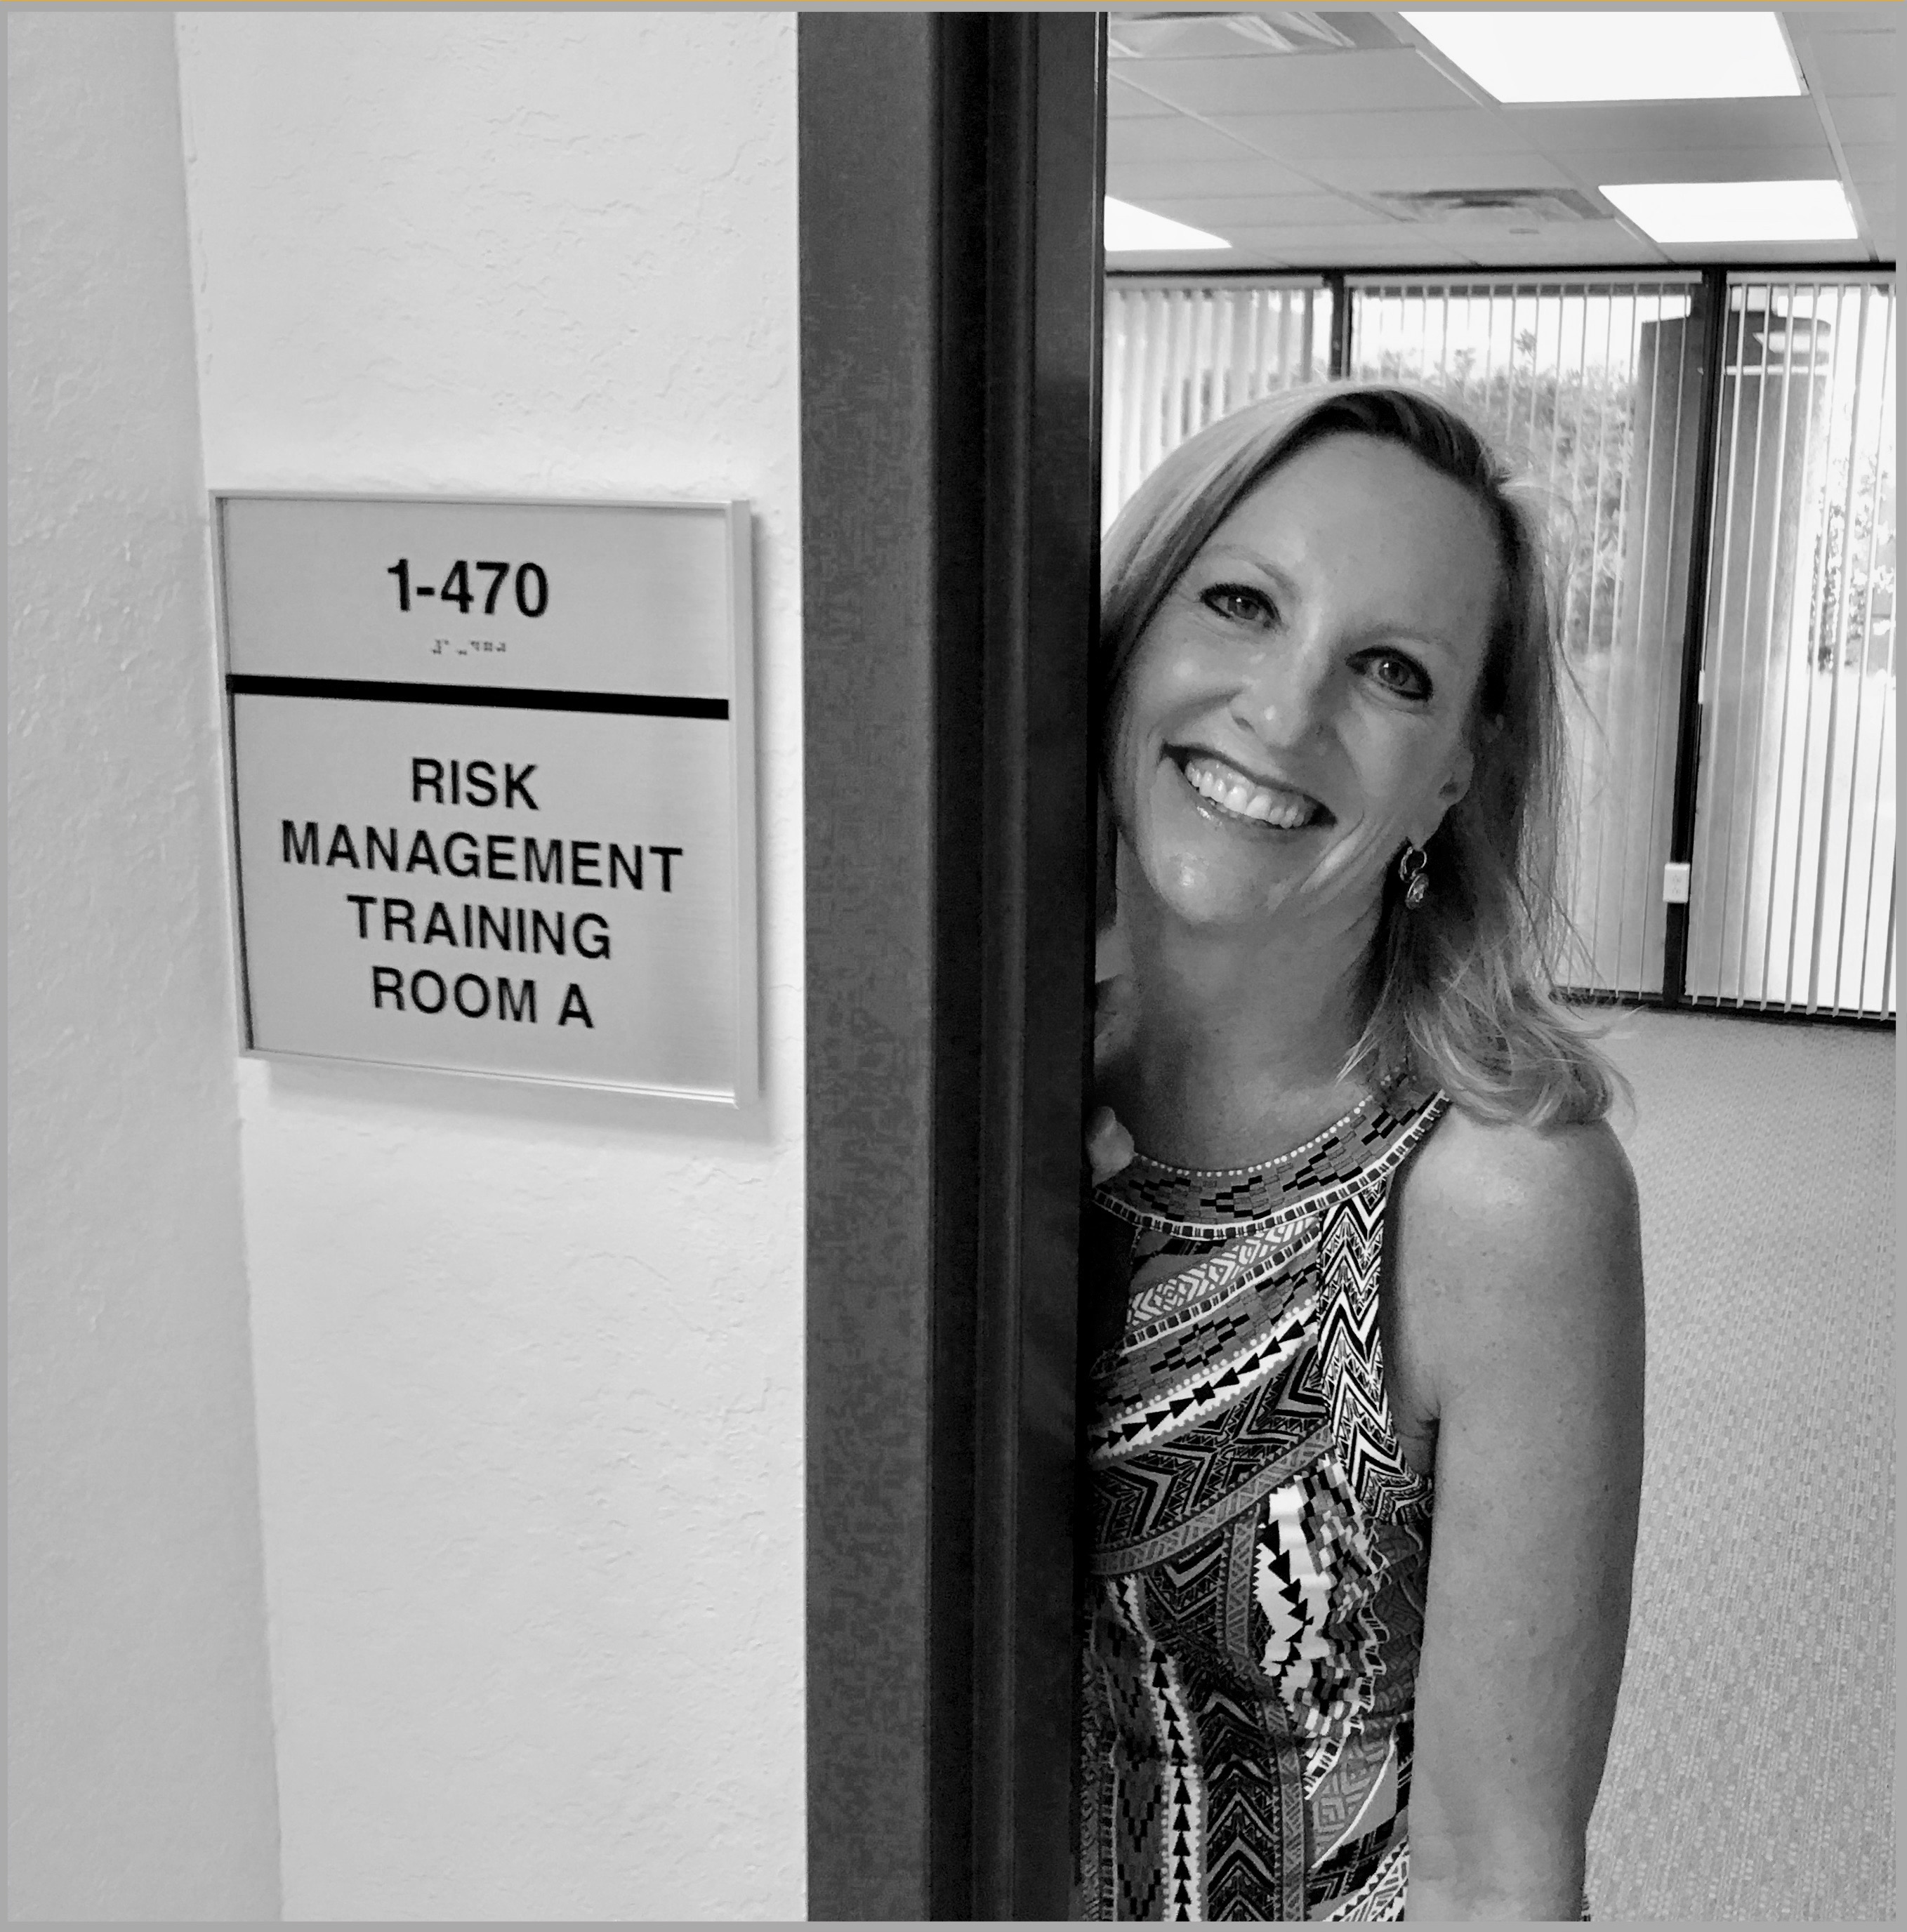 smiling woman at conference room door for cyber rick management training